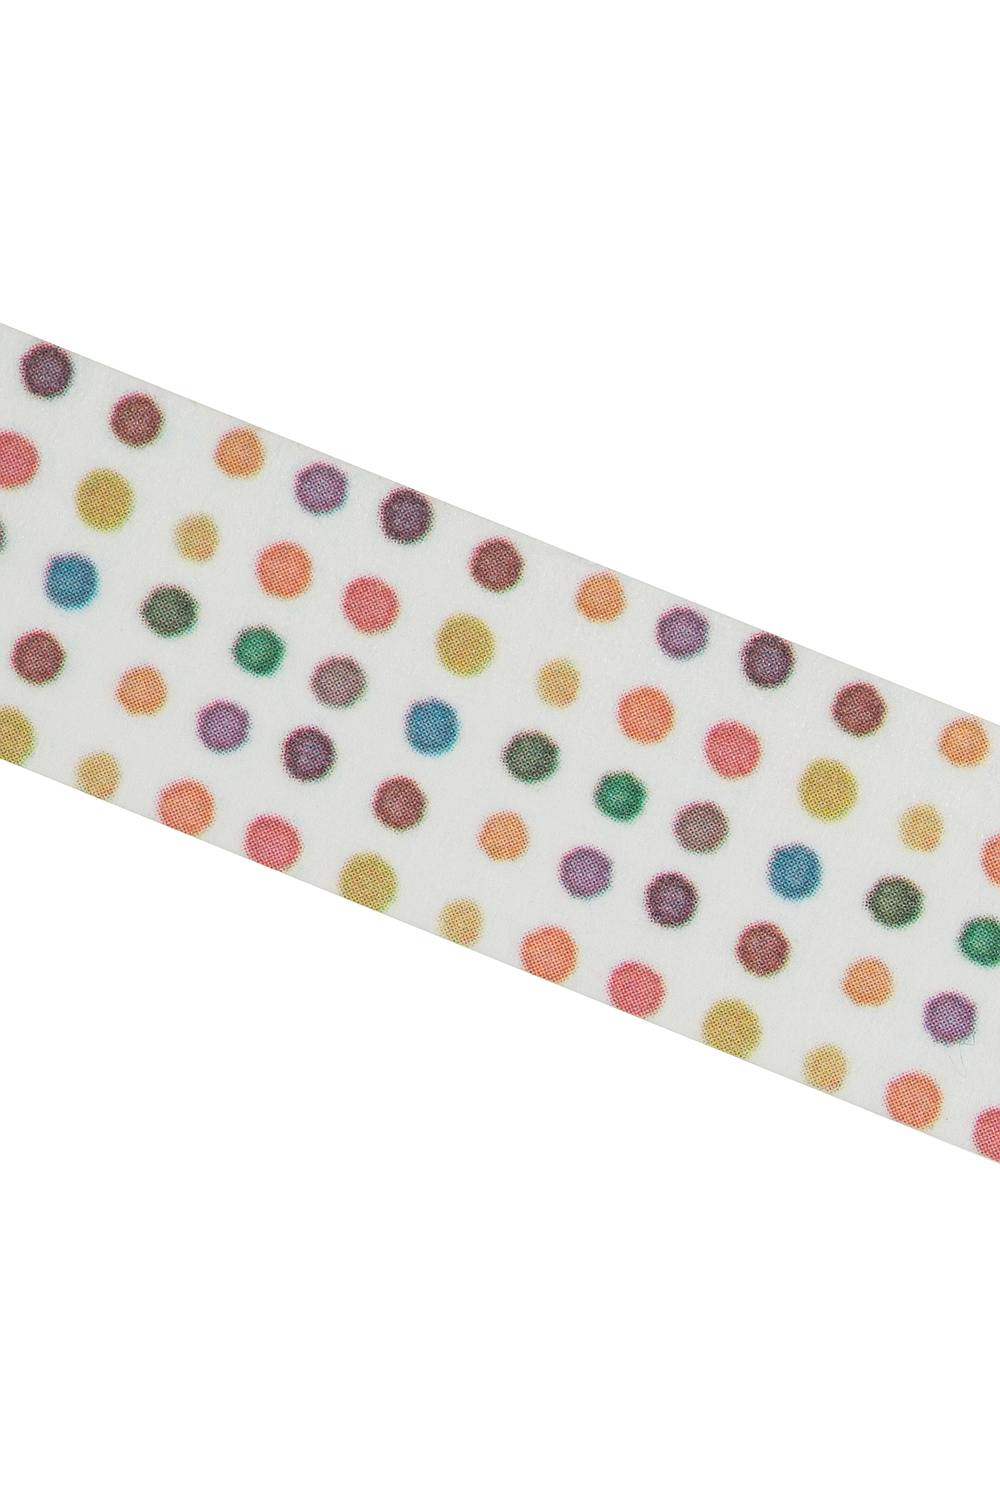 Washi Tape - Bunte Pünktchen